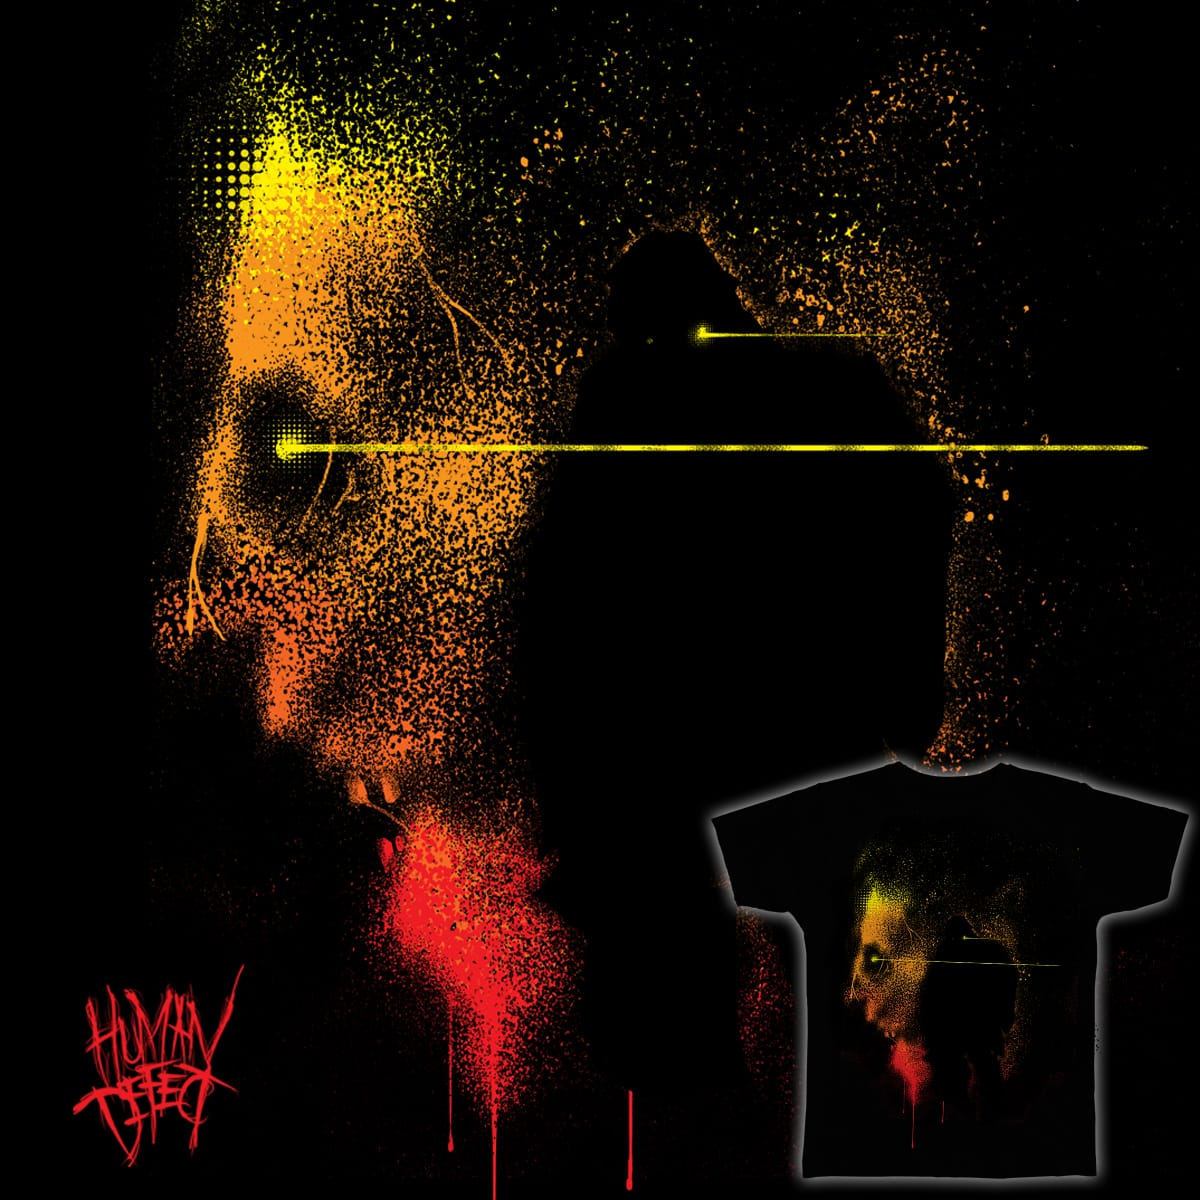 Infested/Infected by humandefect1989 on Threadless